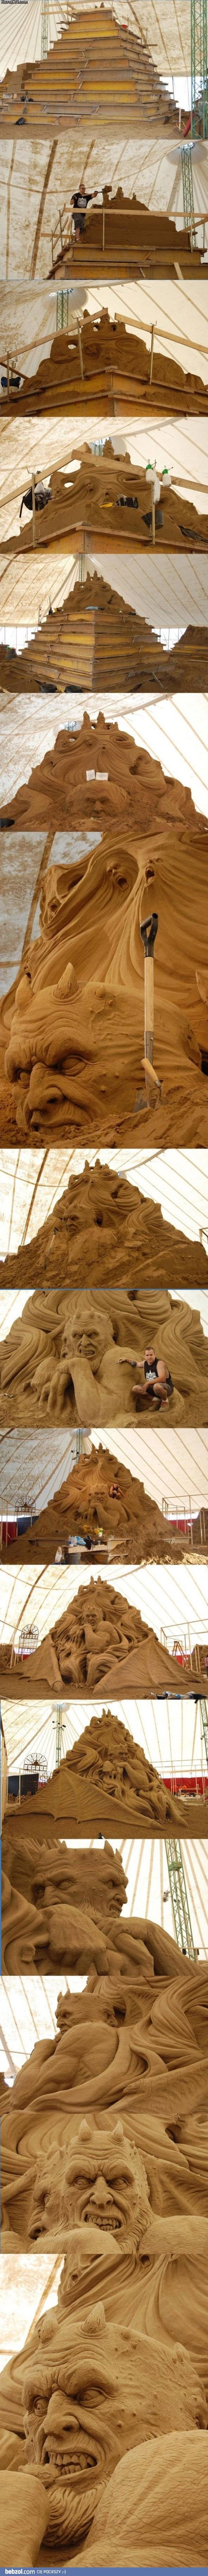 piece of art made of sand